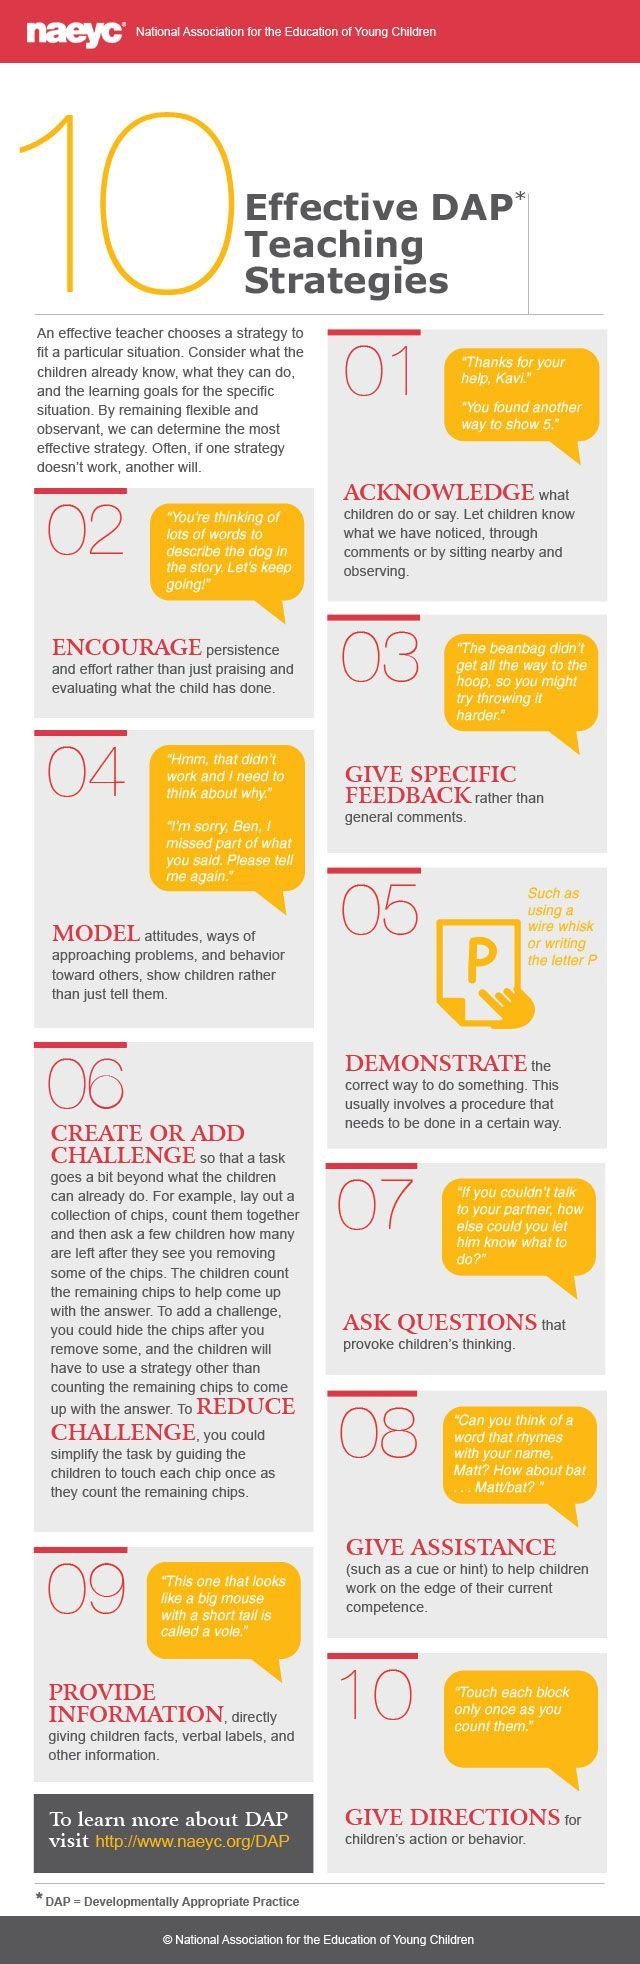 10 Effective DAP Strategies: An effective teacher or family child care provider chooses a strategy to fit a particular situation. It's important to consider what the children already know and can do and the learning goals for the specific situation. By remaining flexible and observant, we can determine which strategy may be most effective. Often, if one strategy doesn't work, another will. Learn more at: http://www.naeyc.org/dap/10-effective-dap-teaching-strategies